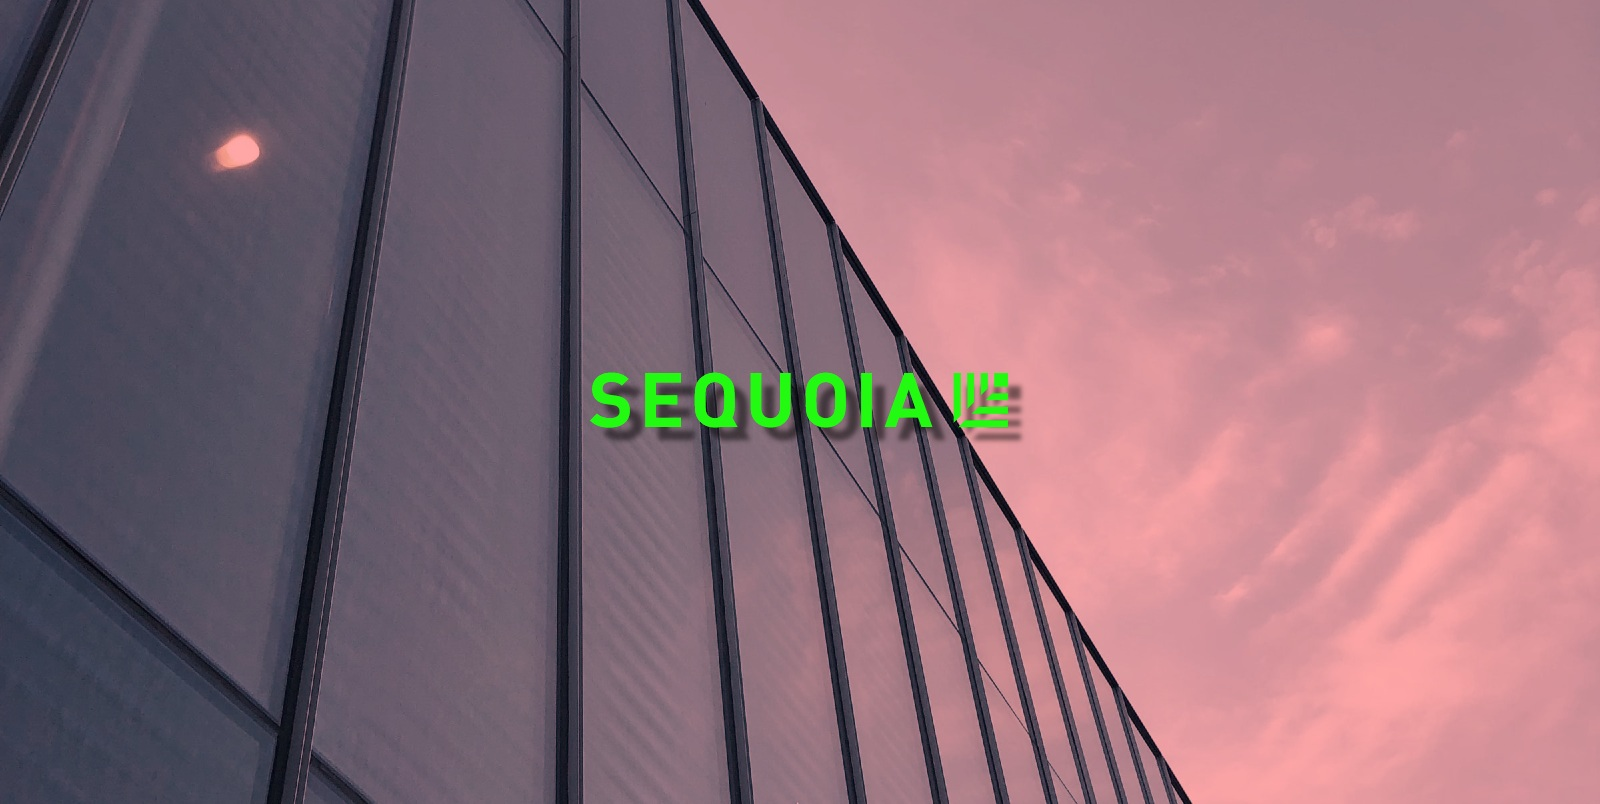 VC giant Sequoia Capital discloses data breach after failed BEC attack